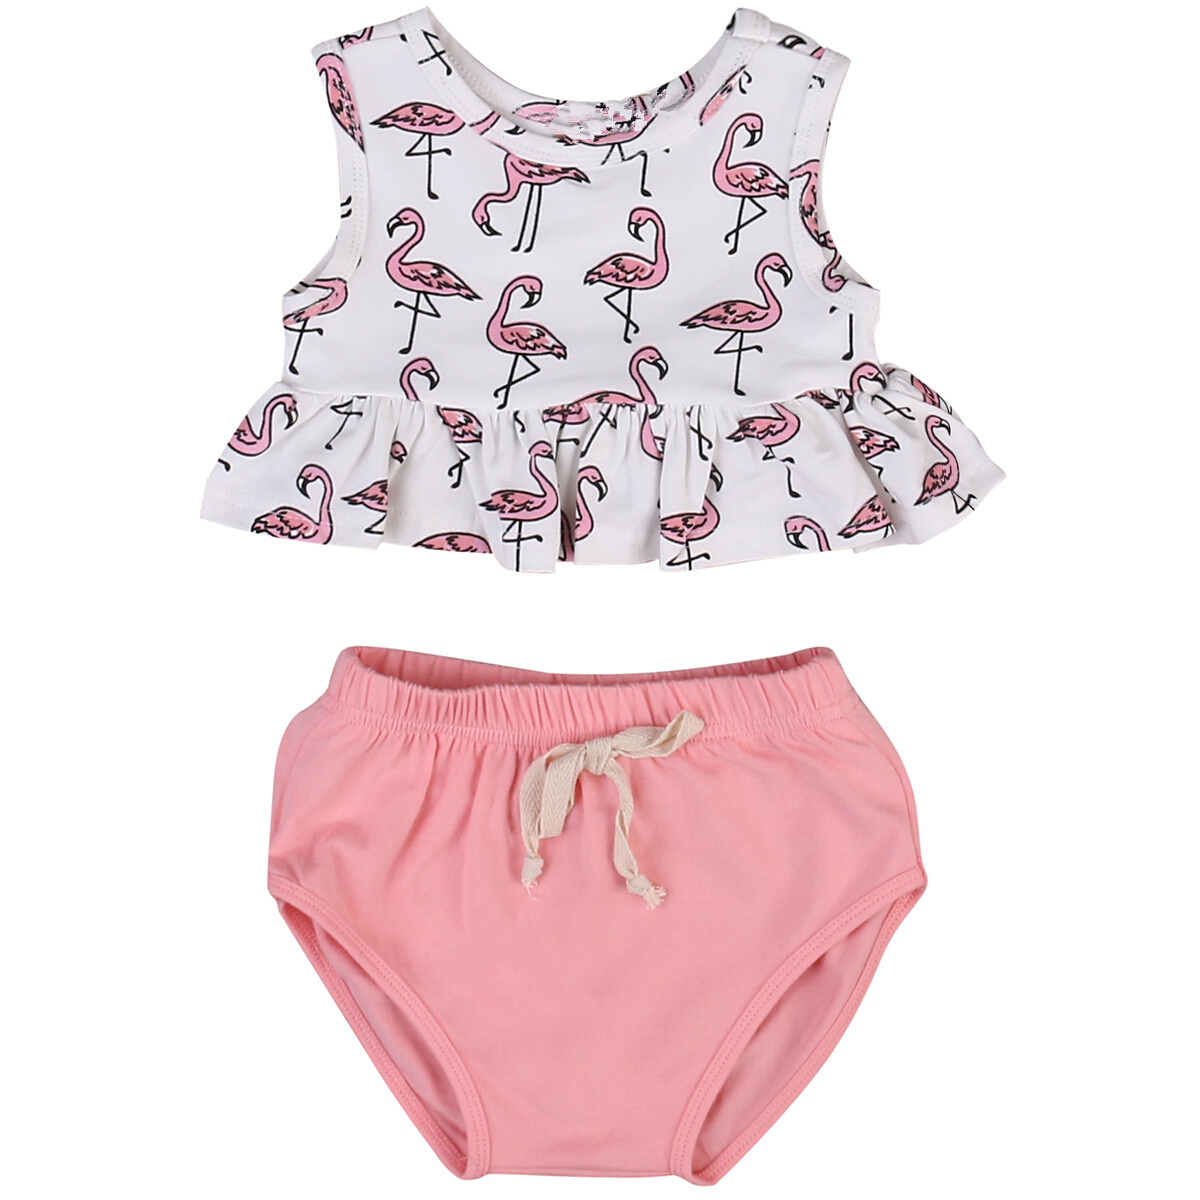 New Arrivals Newborn Toddler Baby Girls Clothes Vest Tops T-shirts+Shorts 2Pcs Sets Kids Girls Casual Cotton Summer Outfits